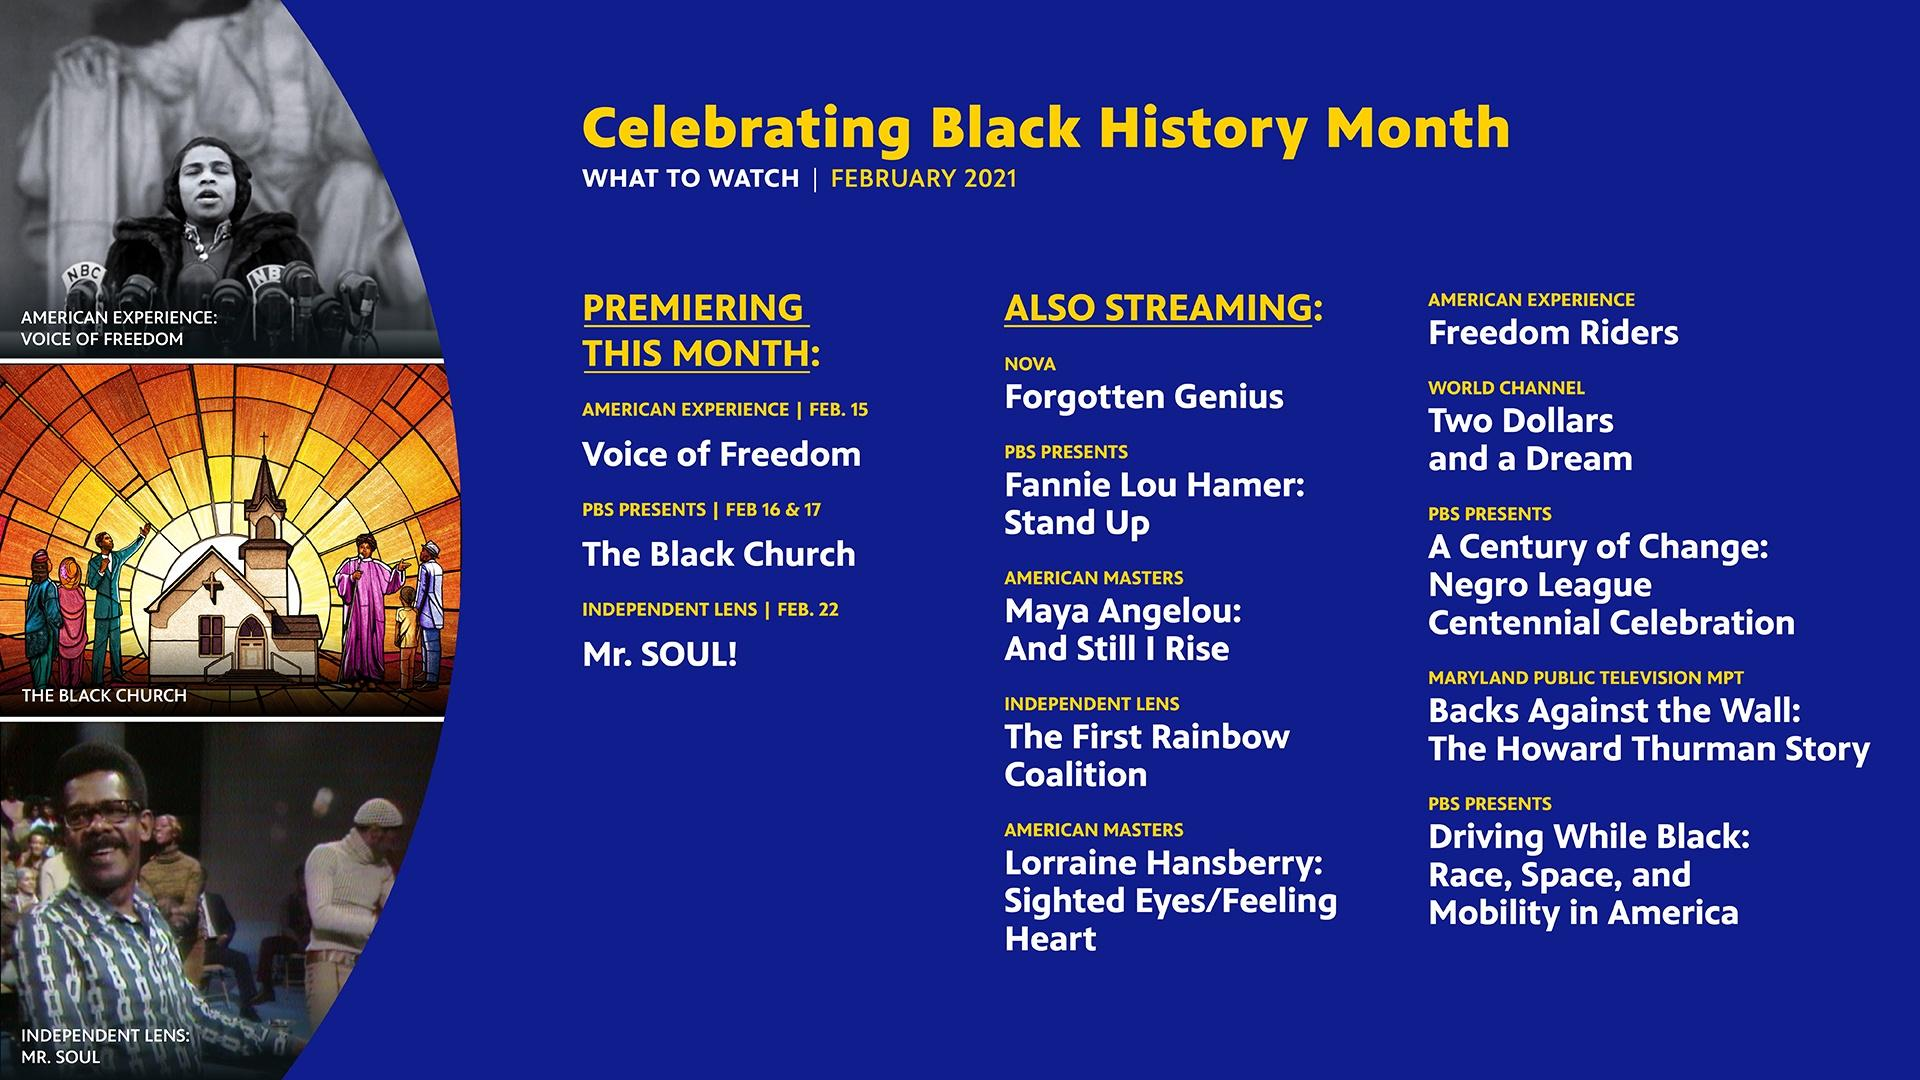 What to Watch February 2021 - Celebrate Black History Month